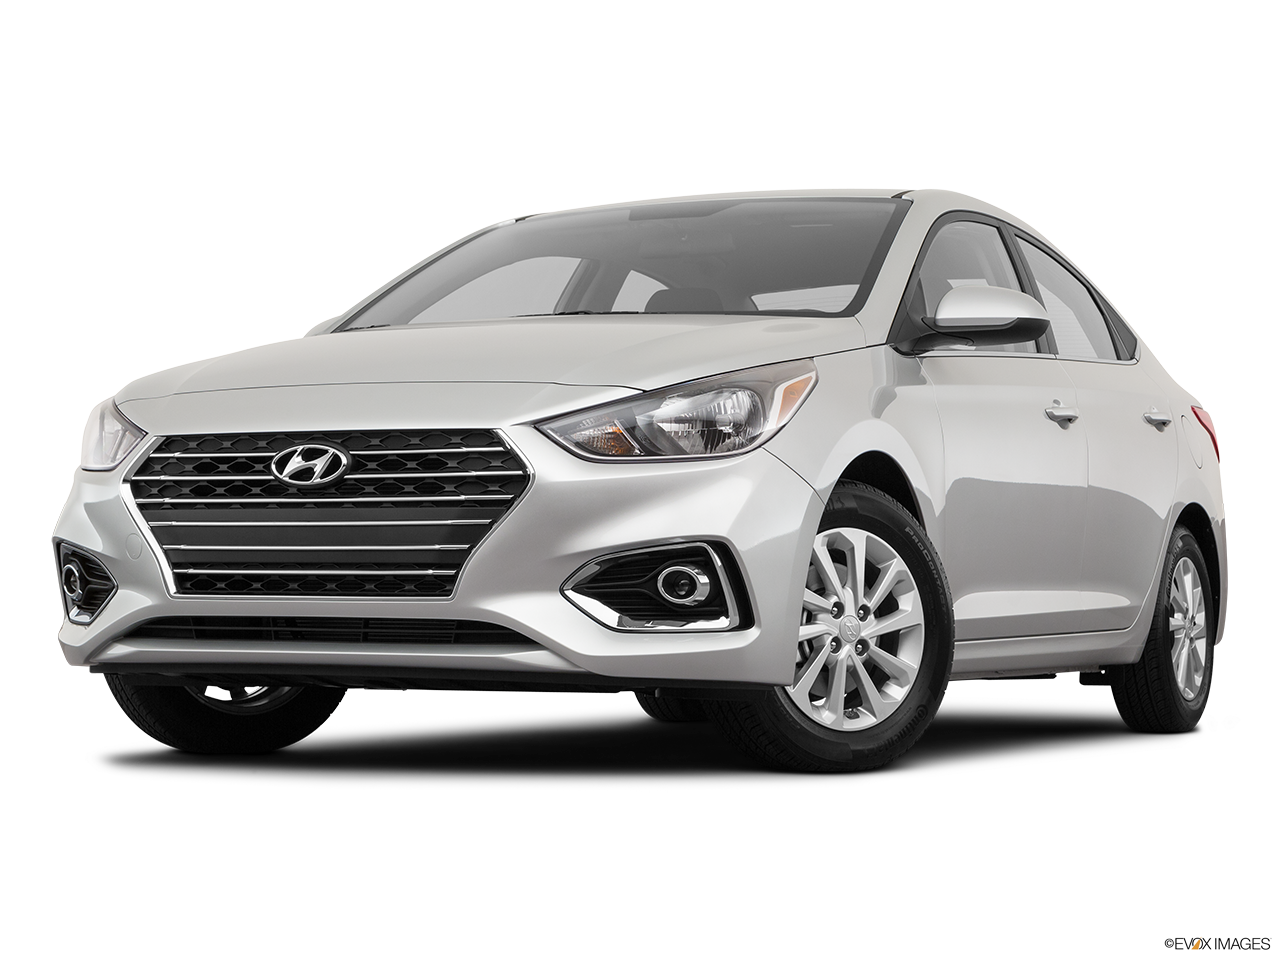 2020 Hyundai Accent photo